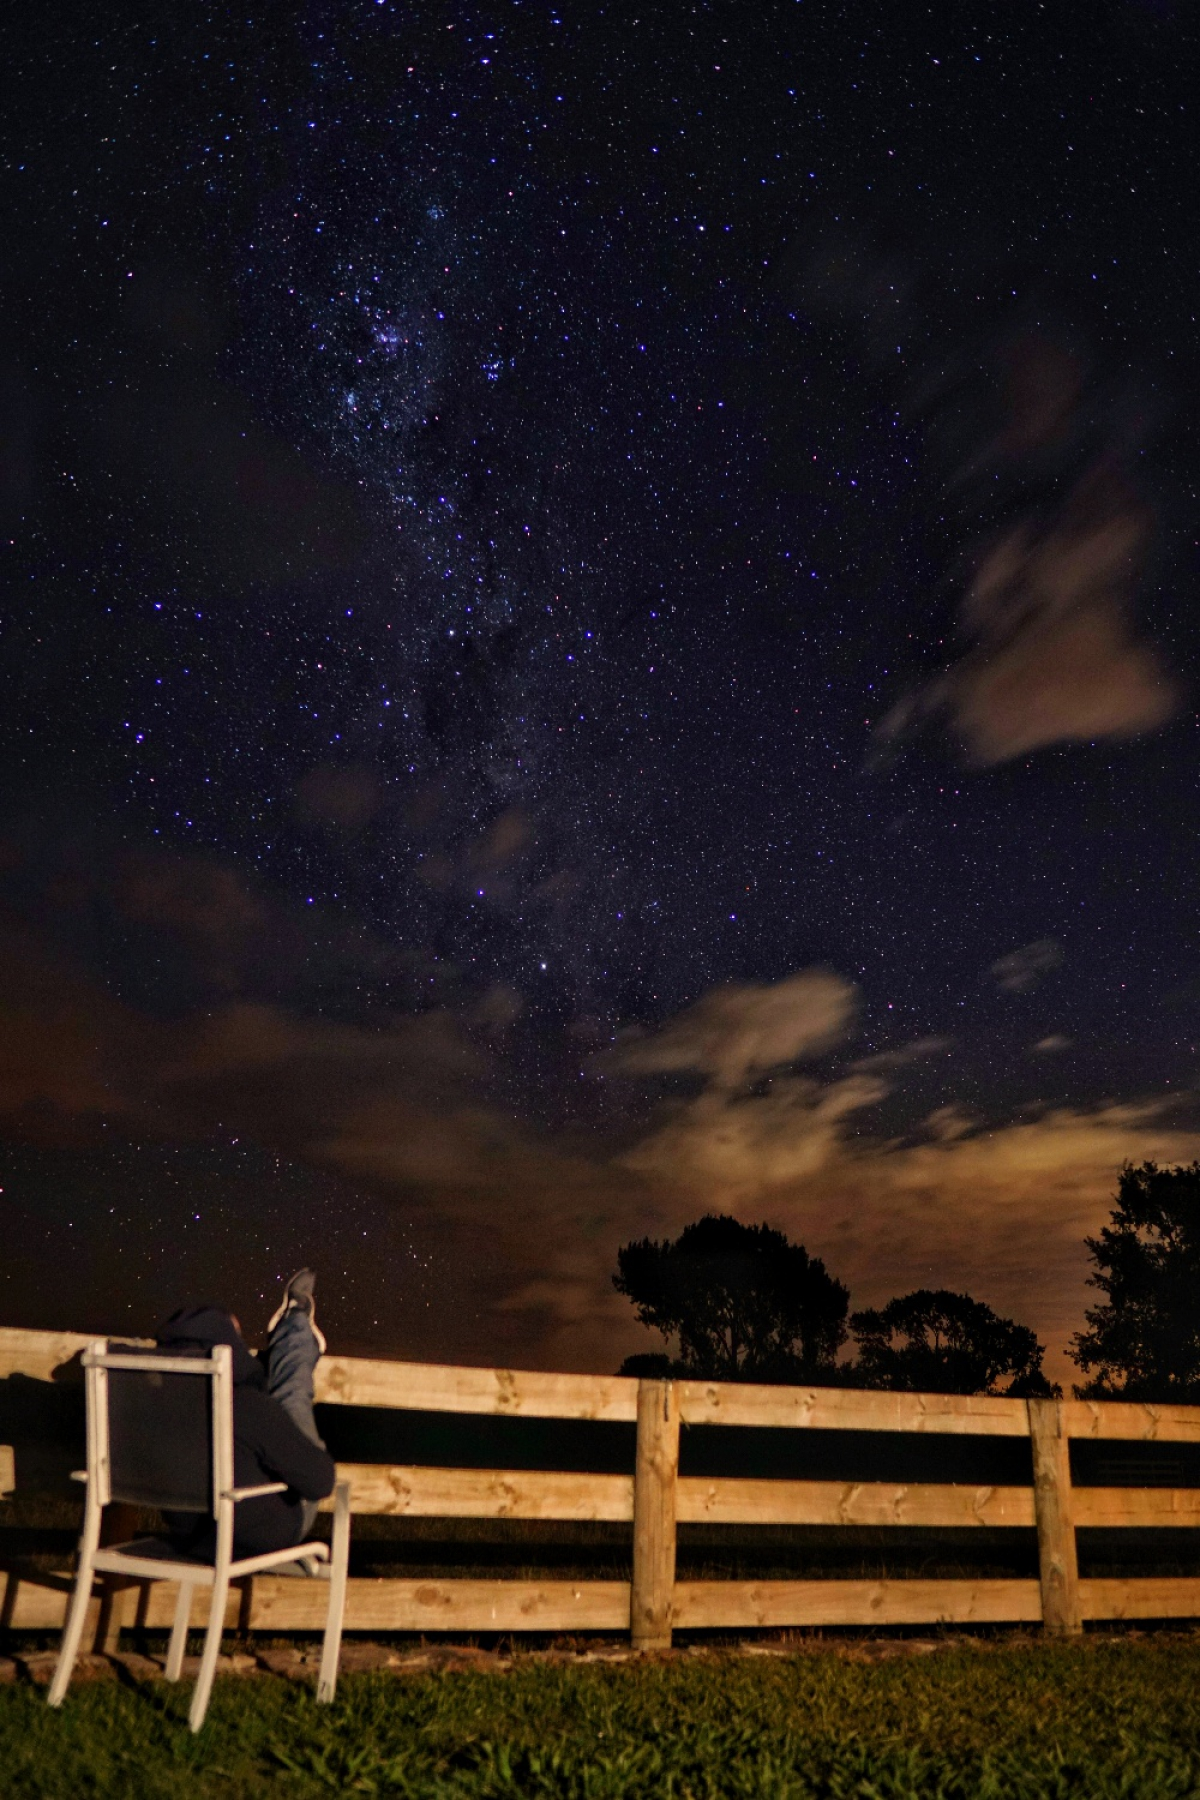 Photo of property: guests love sitting under the starry canopy at night- we showcase the most amazing skies here in new zealand.